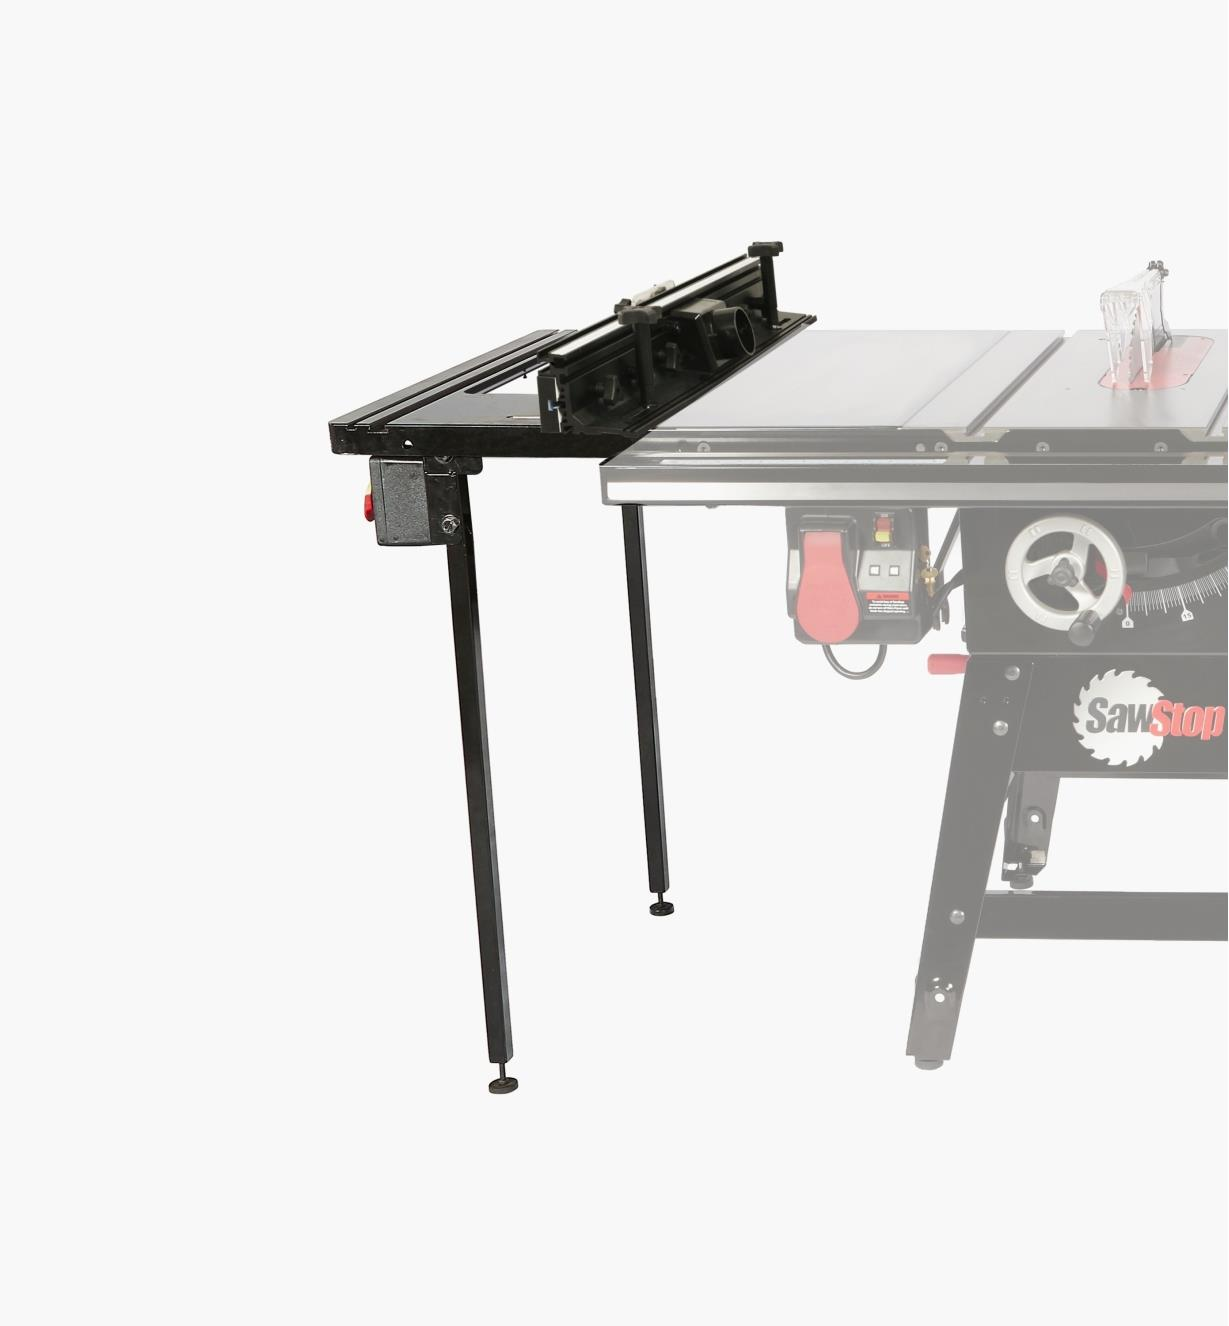 95T2555 - In-Line Router Table for the SawStop Contractor Saw